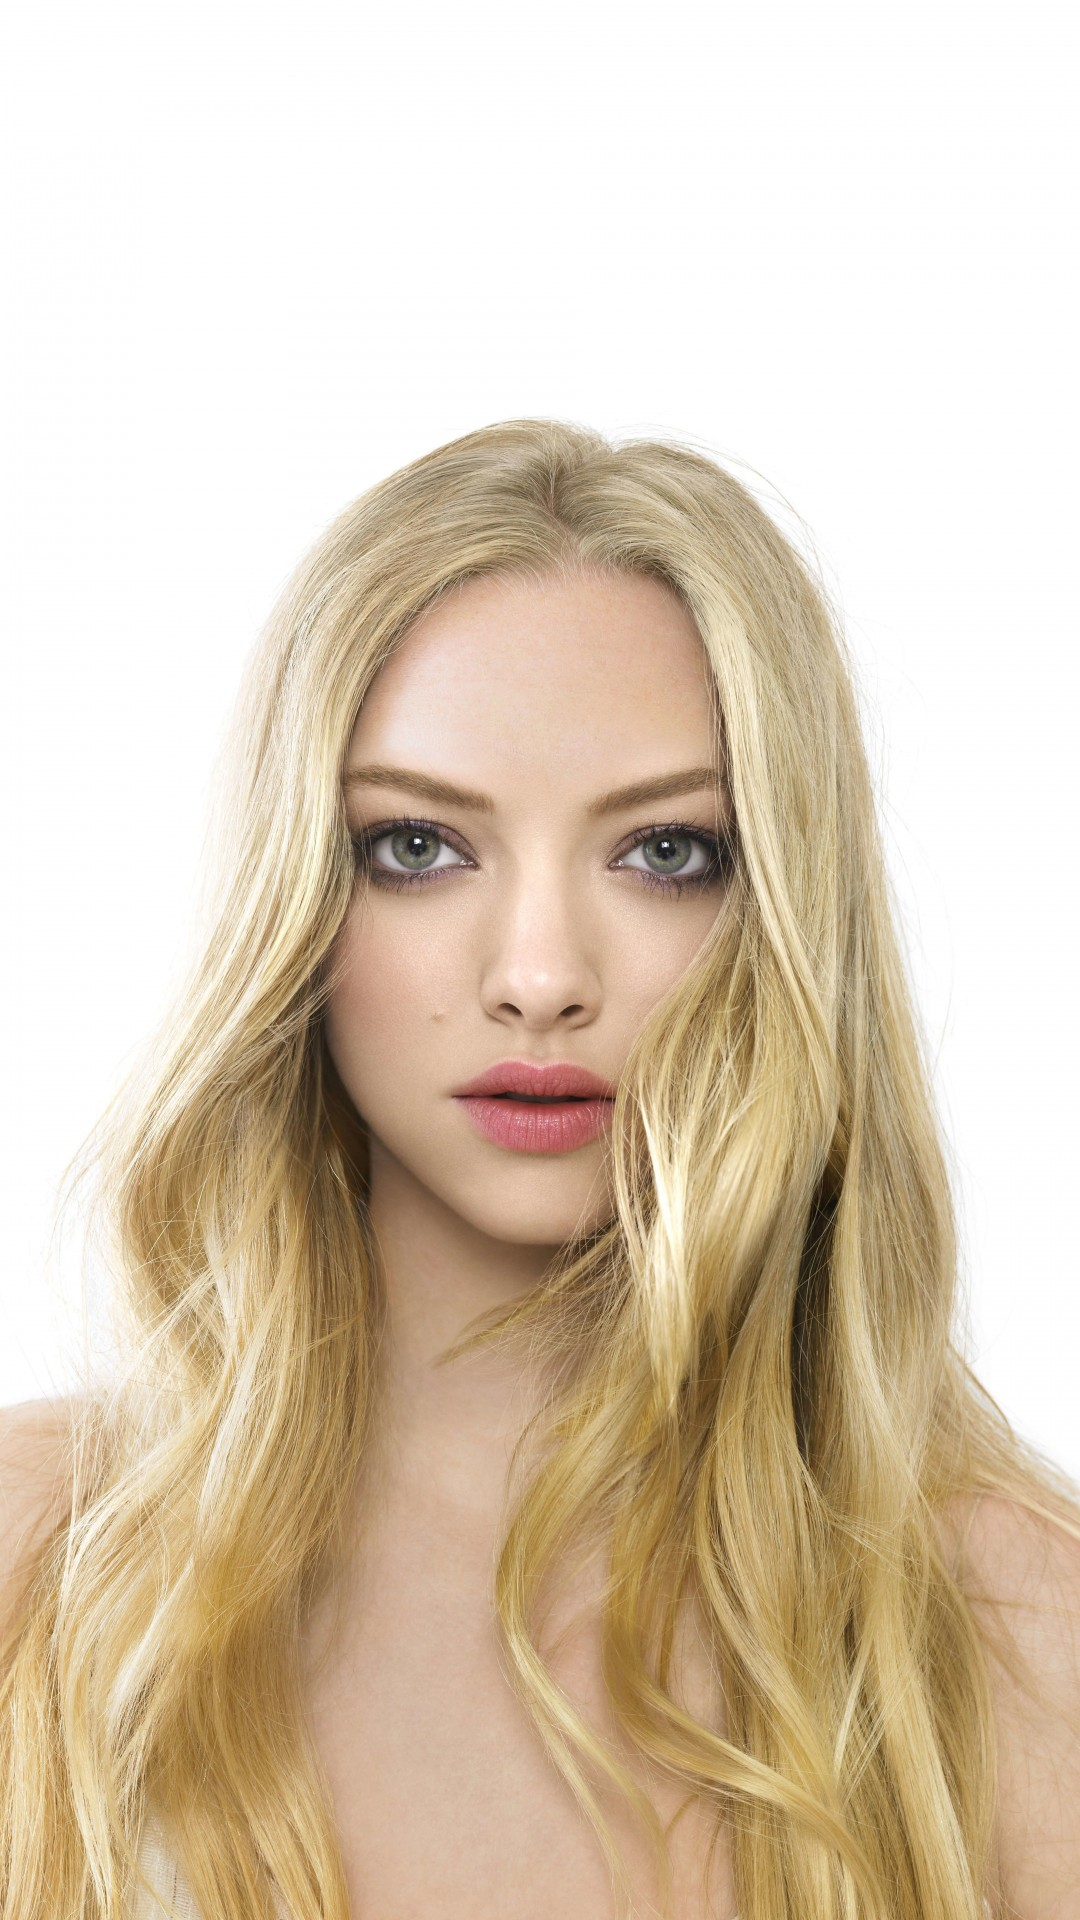 Amanda Seyfried Portrait Wallpaper for Motorola Moto X